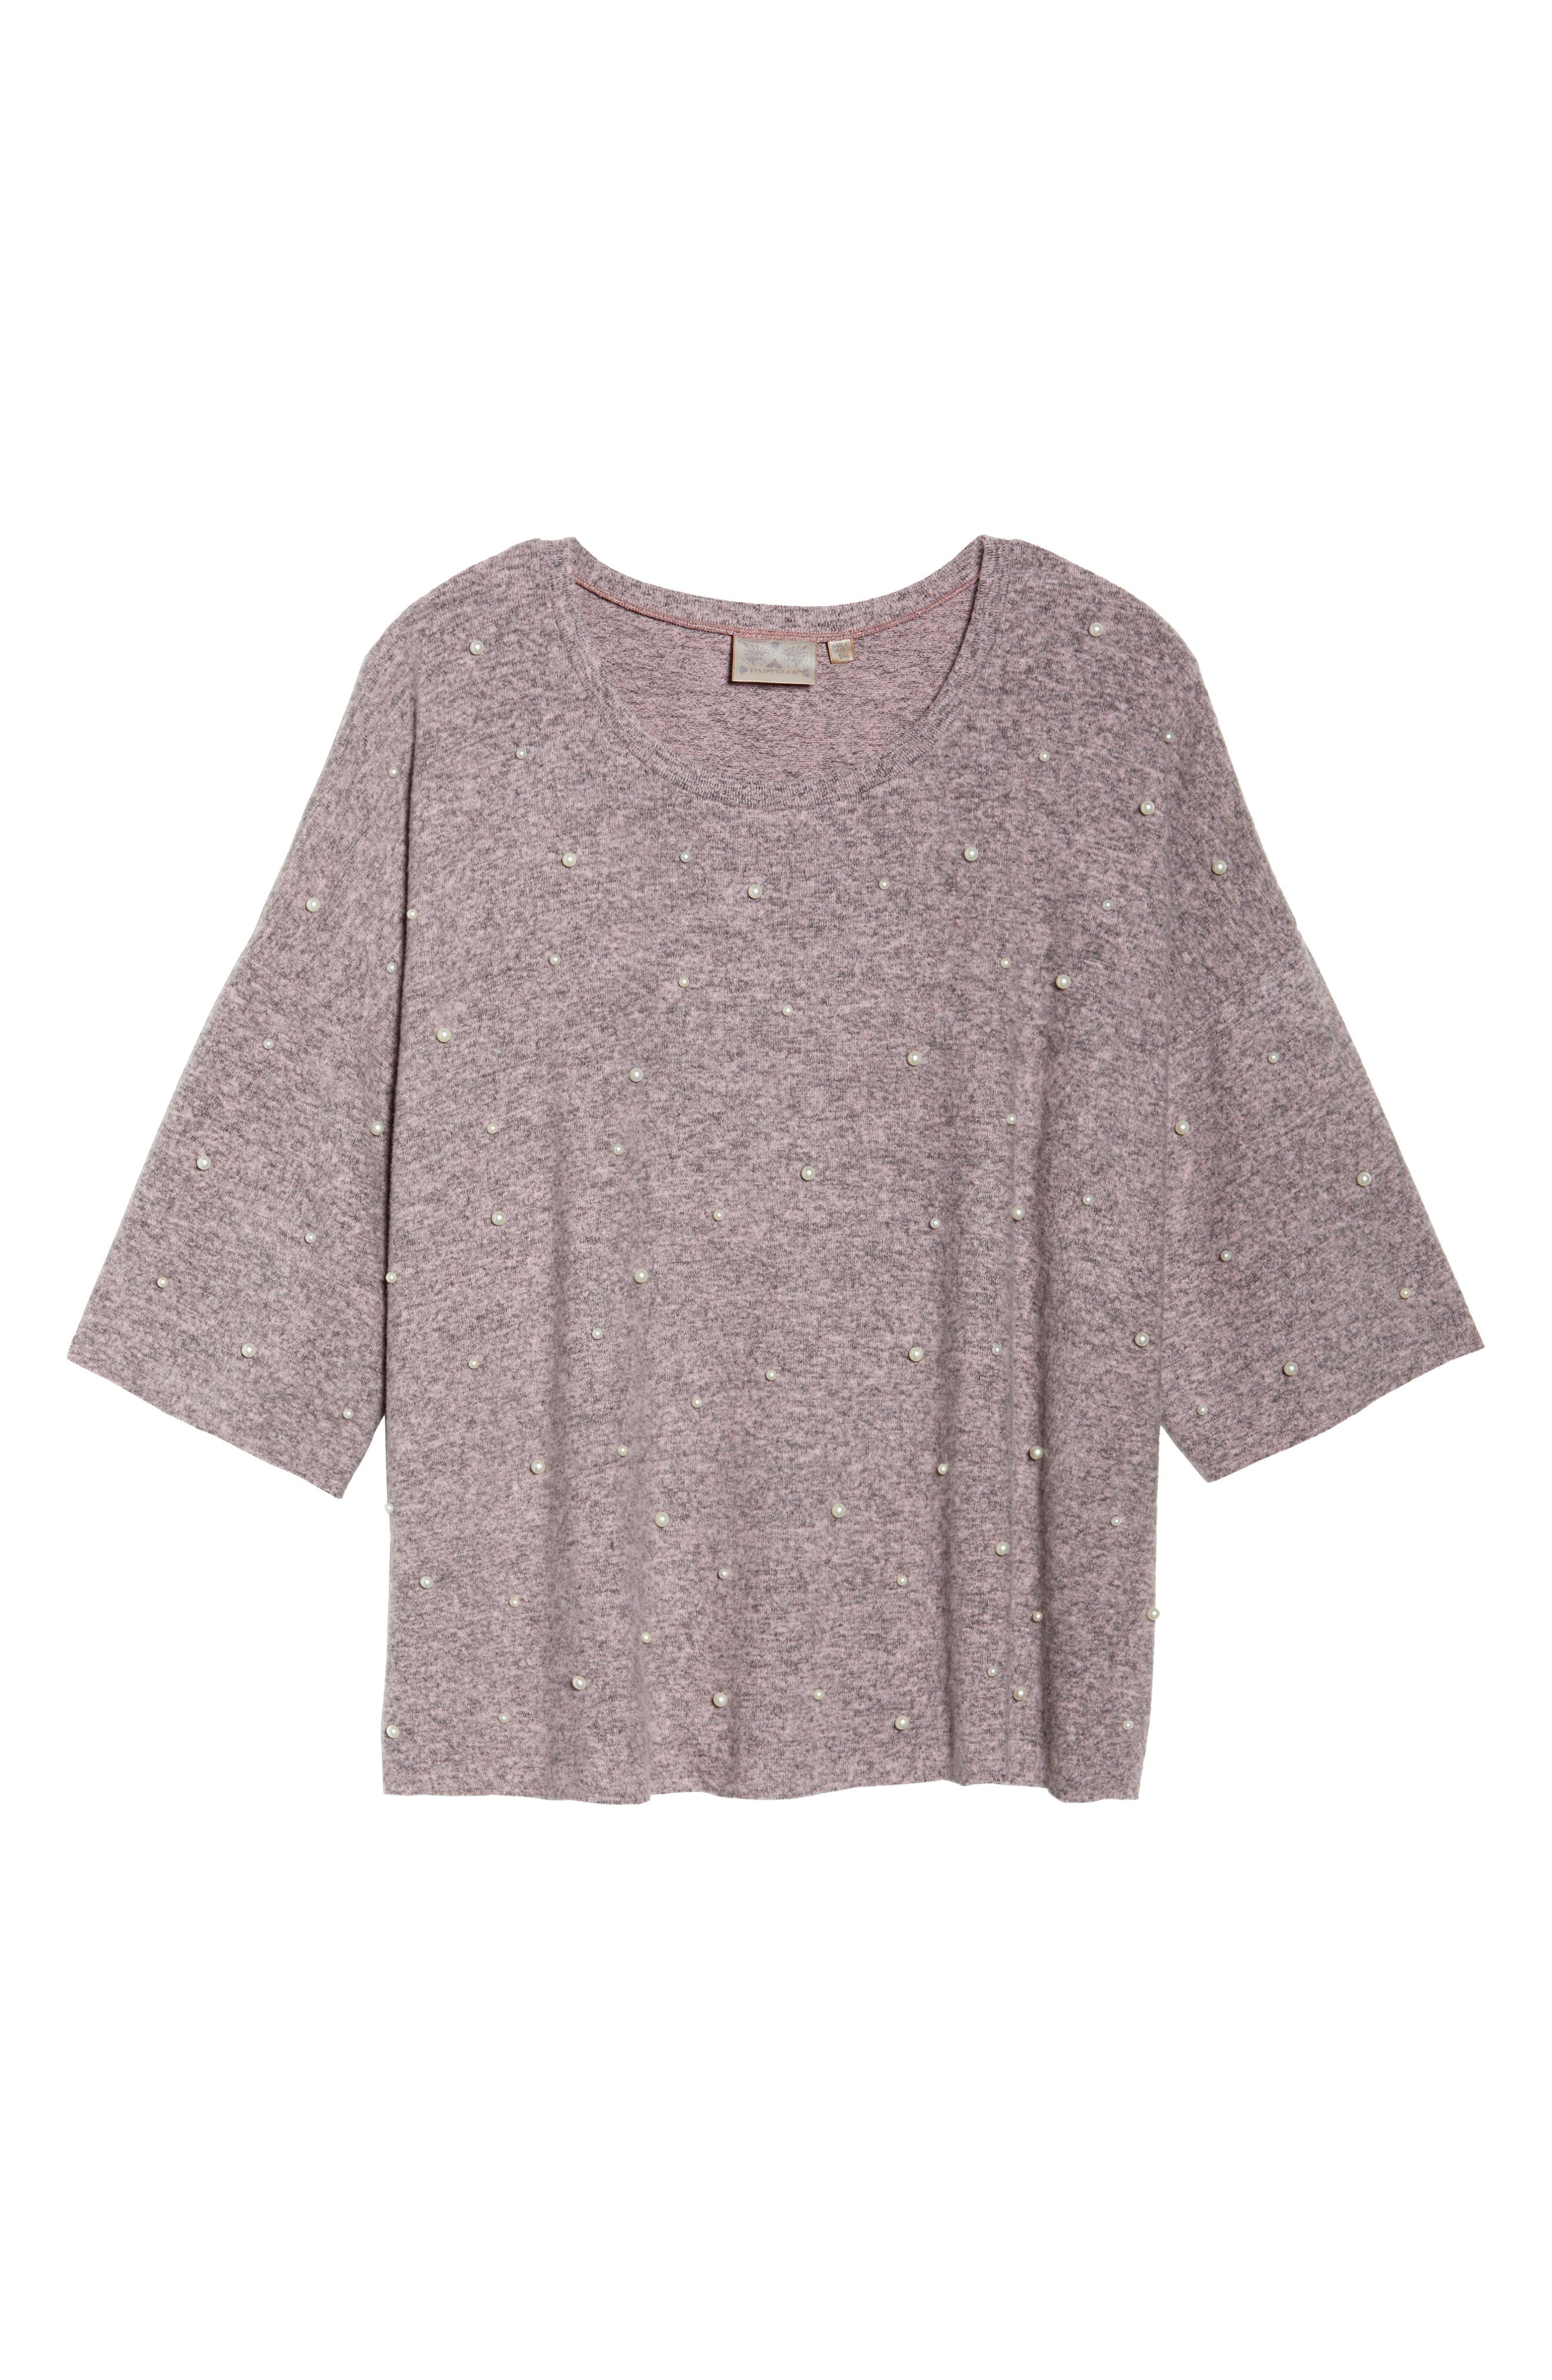 Pearl Embellished Sweater,                             Alternate thumbnail 6, color,                             020